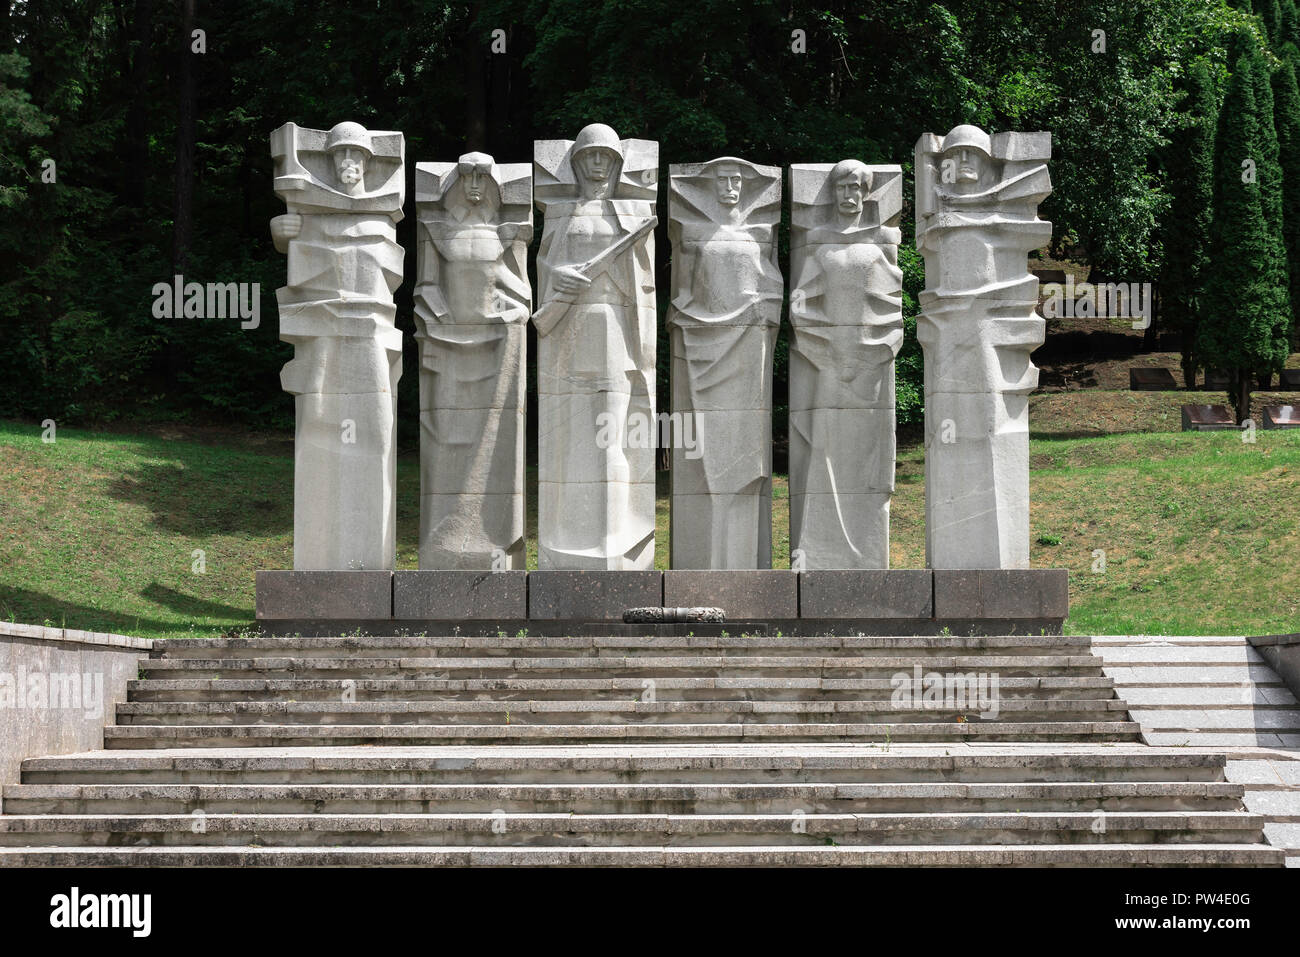 Vilnius cemetery, view of the monument in Antakalnis Cemetery to Red Army soldiers who died in World War Two, Vilnius, Lithuania. Stock Photo